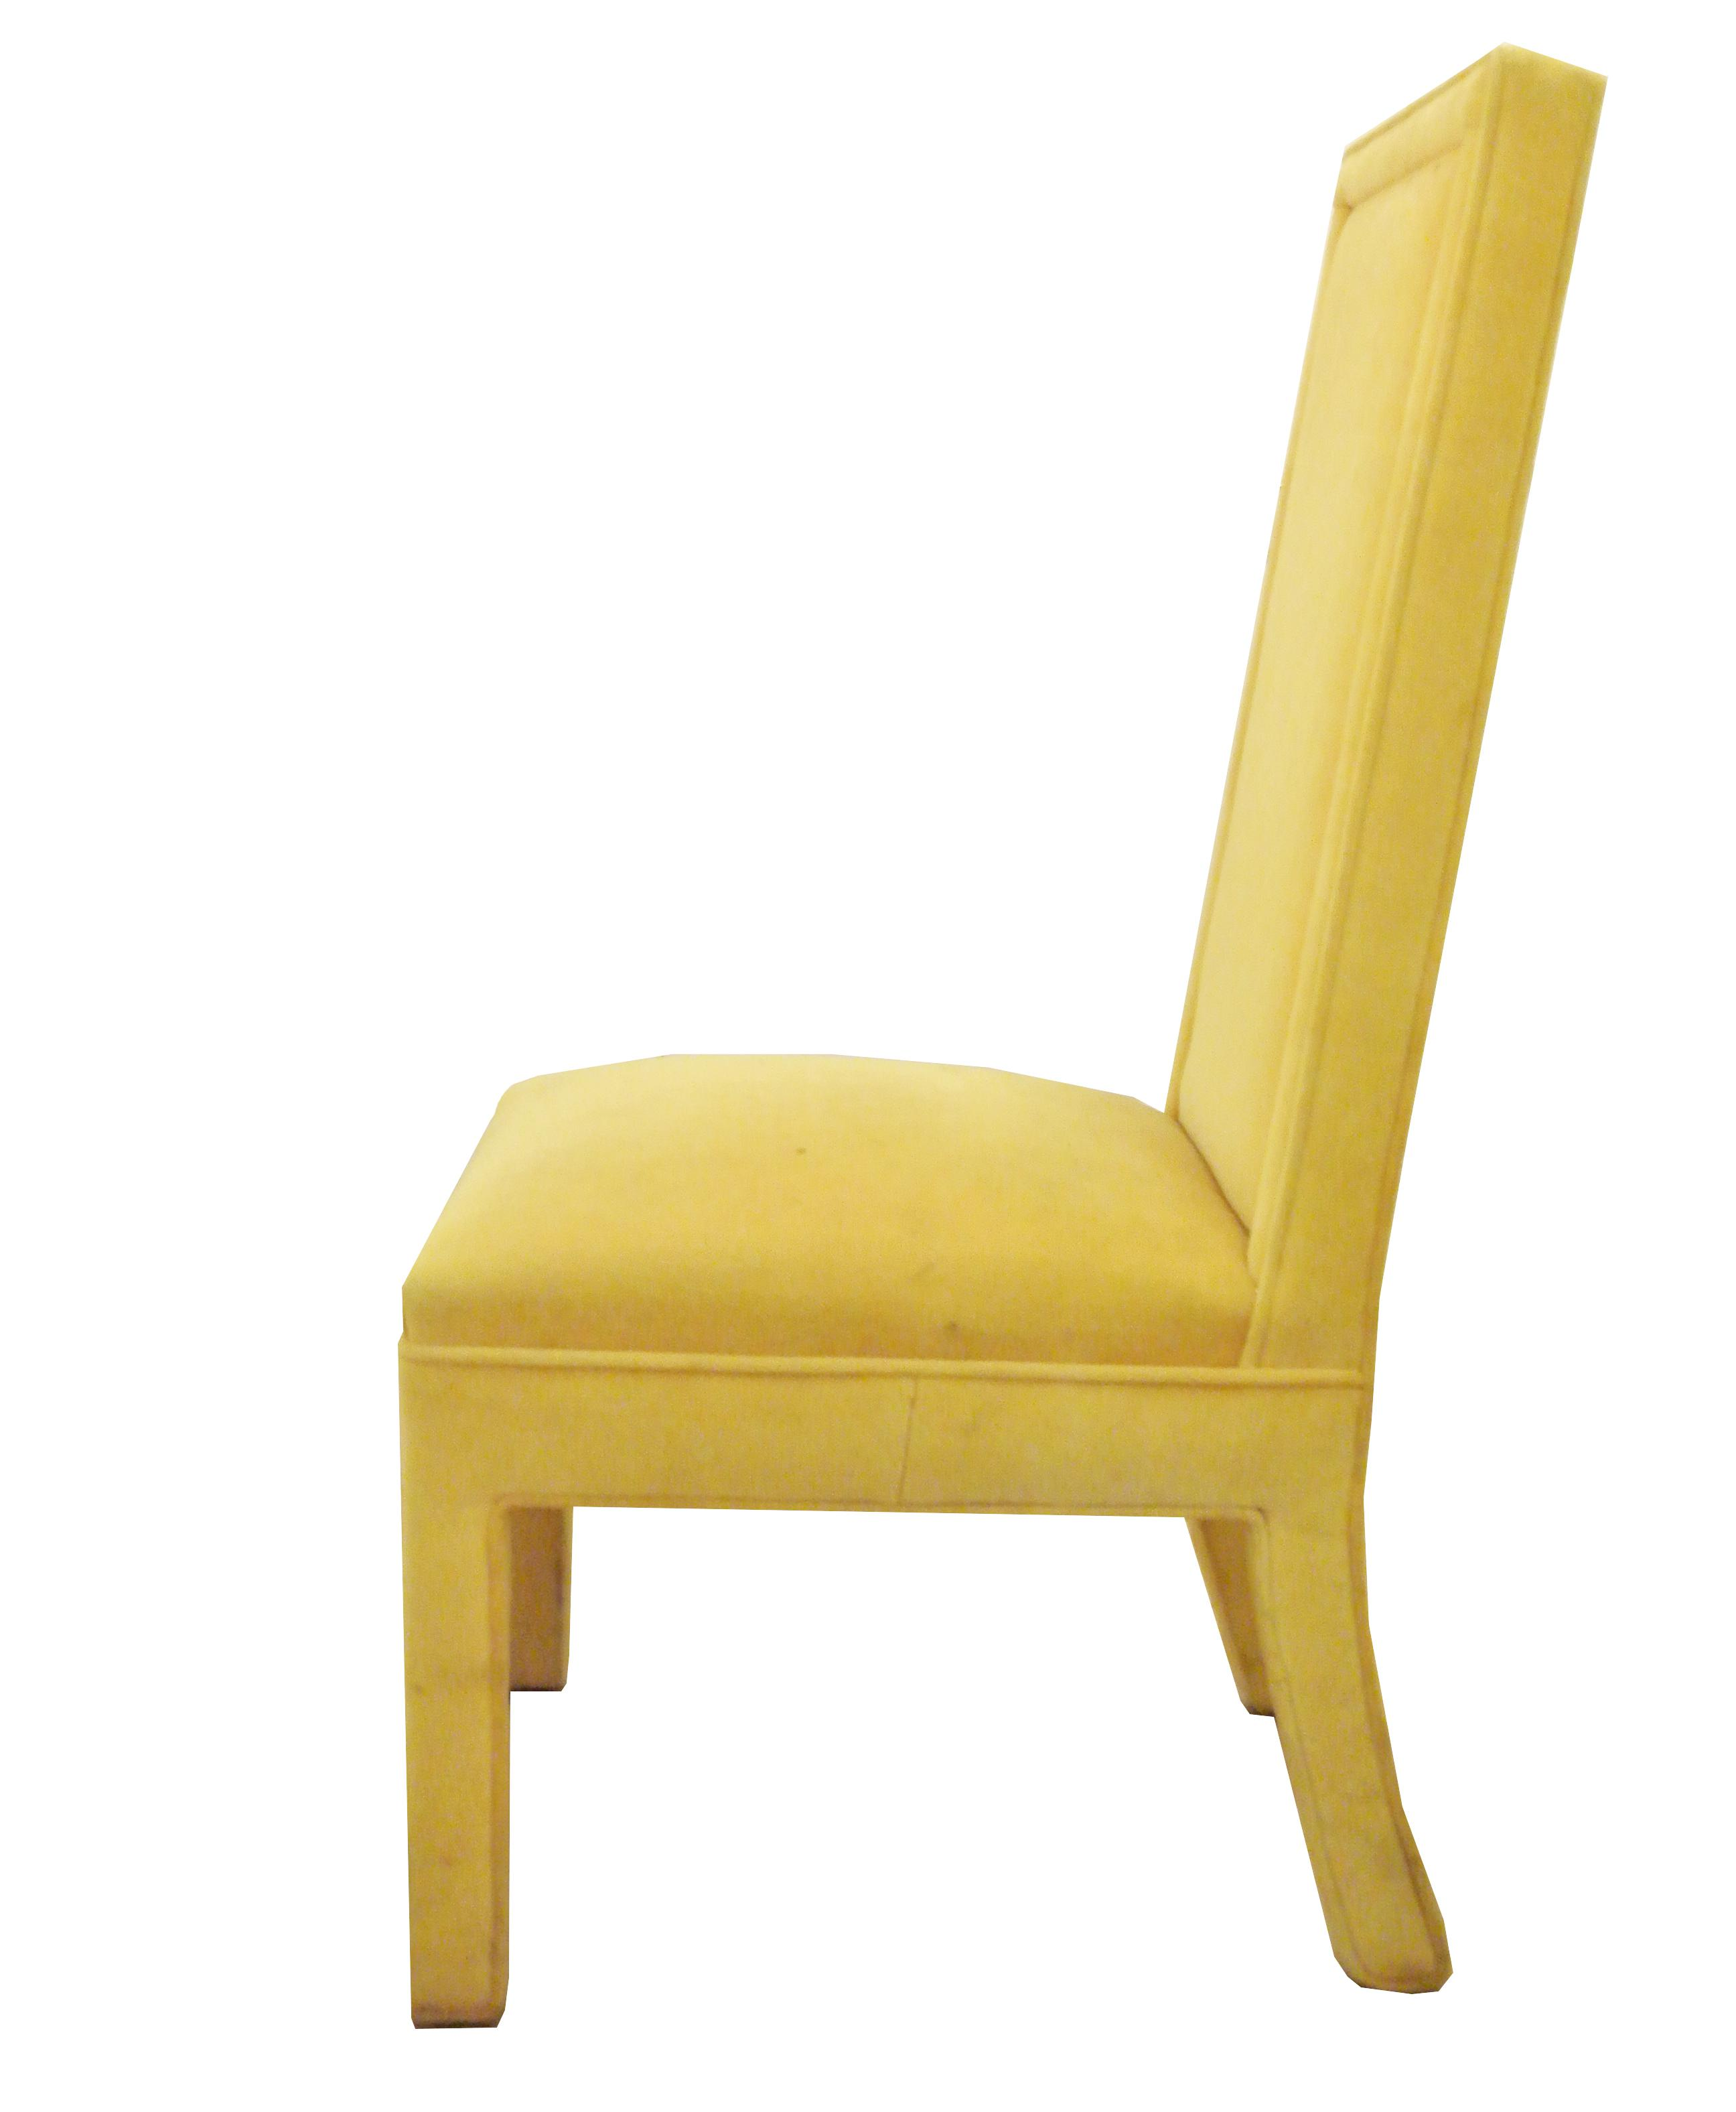 Yellow Faux Mohair Upholstered Parsons Dining Chairs Set  : d3fbf315 87c8 4a88 b946 0f303330c601aspectfitampwidth640ampheight640 from www.chairish.com size 640 x 640 jpeg 18kB